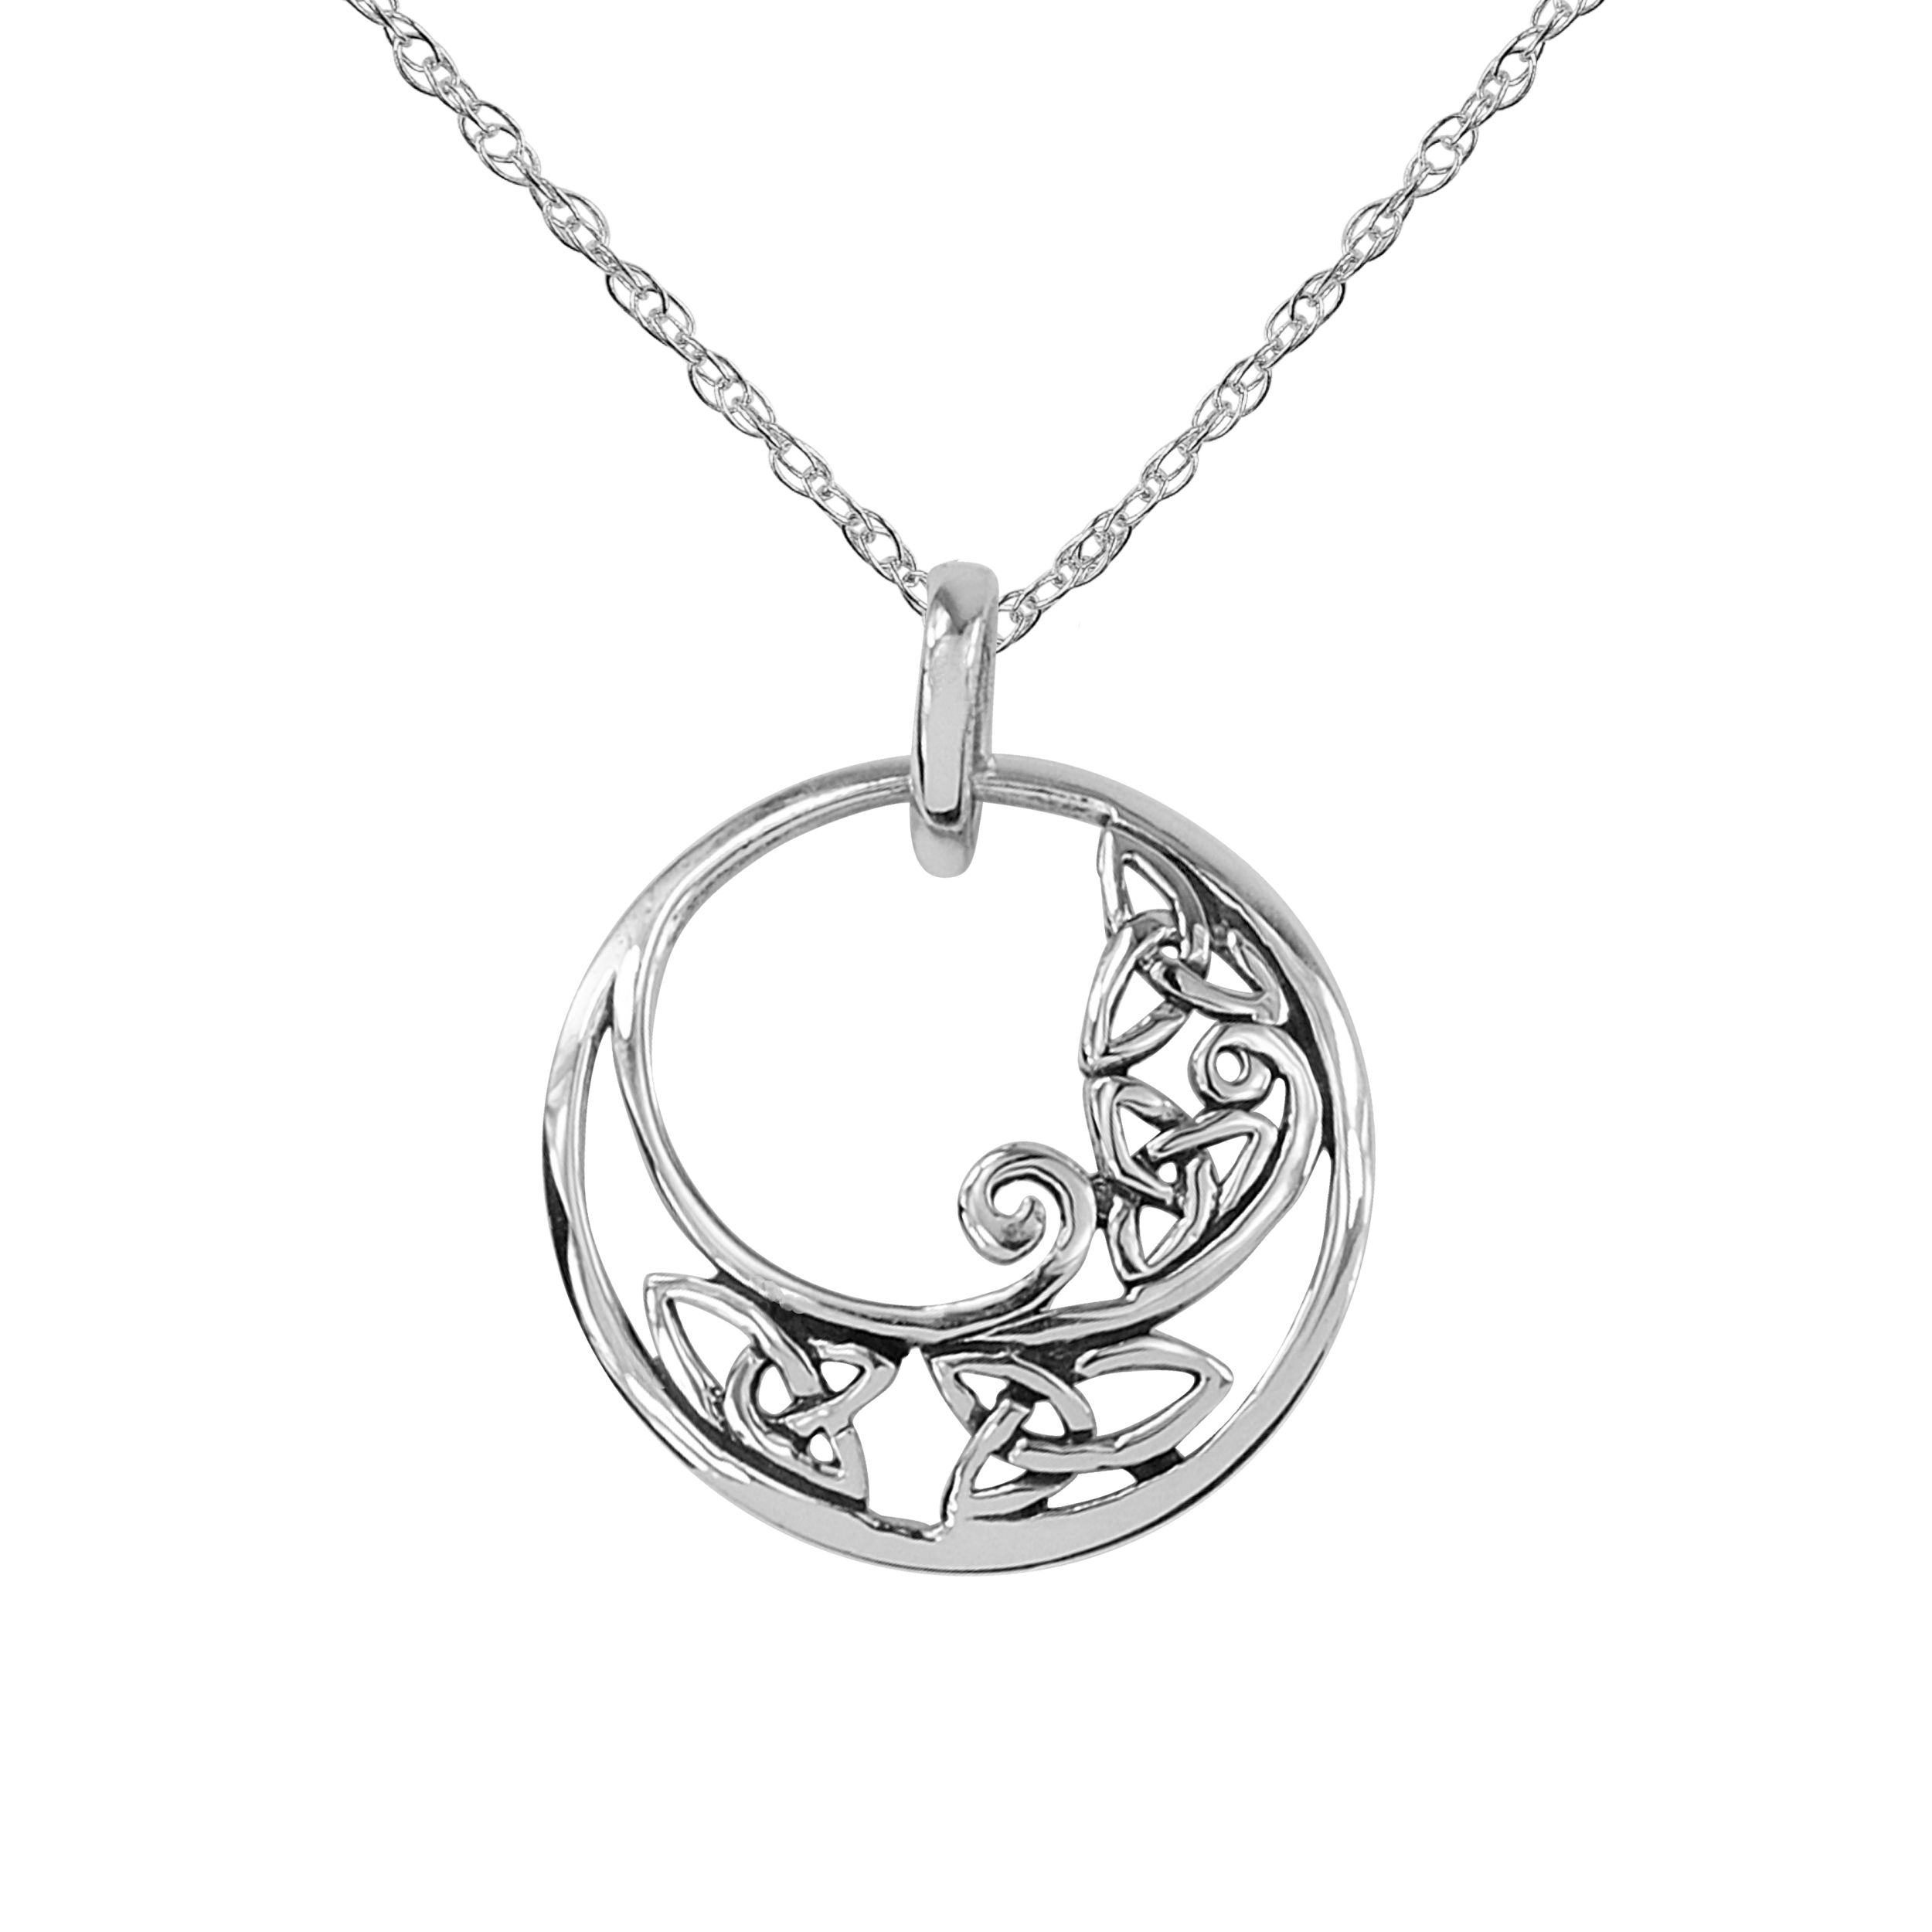 necklaces of fire picture hearts fulfillment product round gold pendant white diamond on